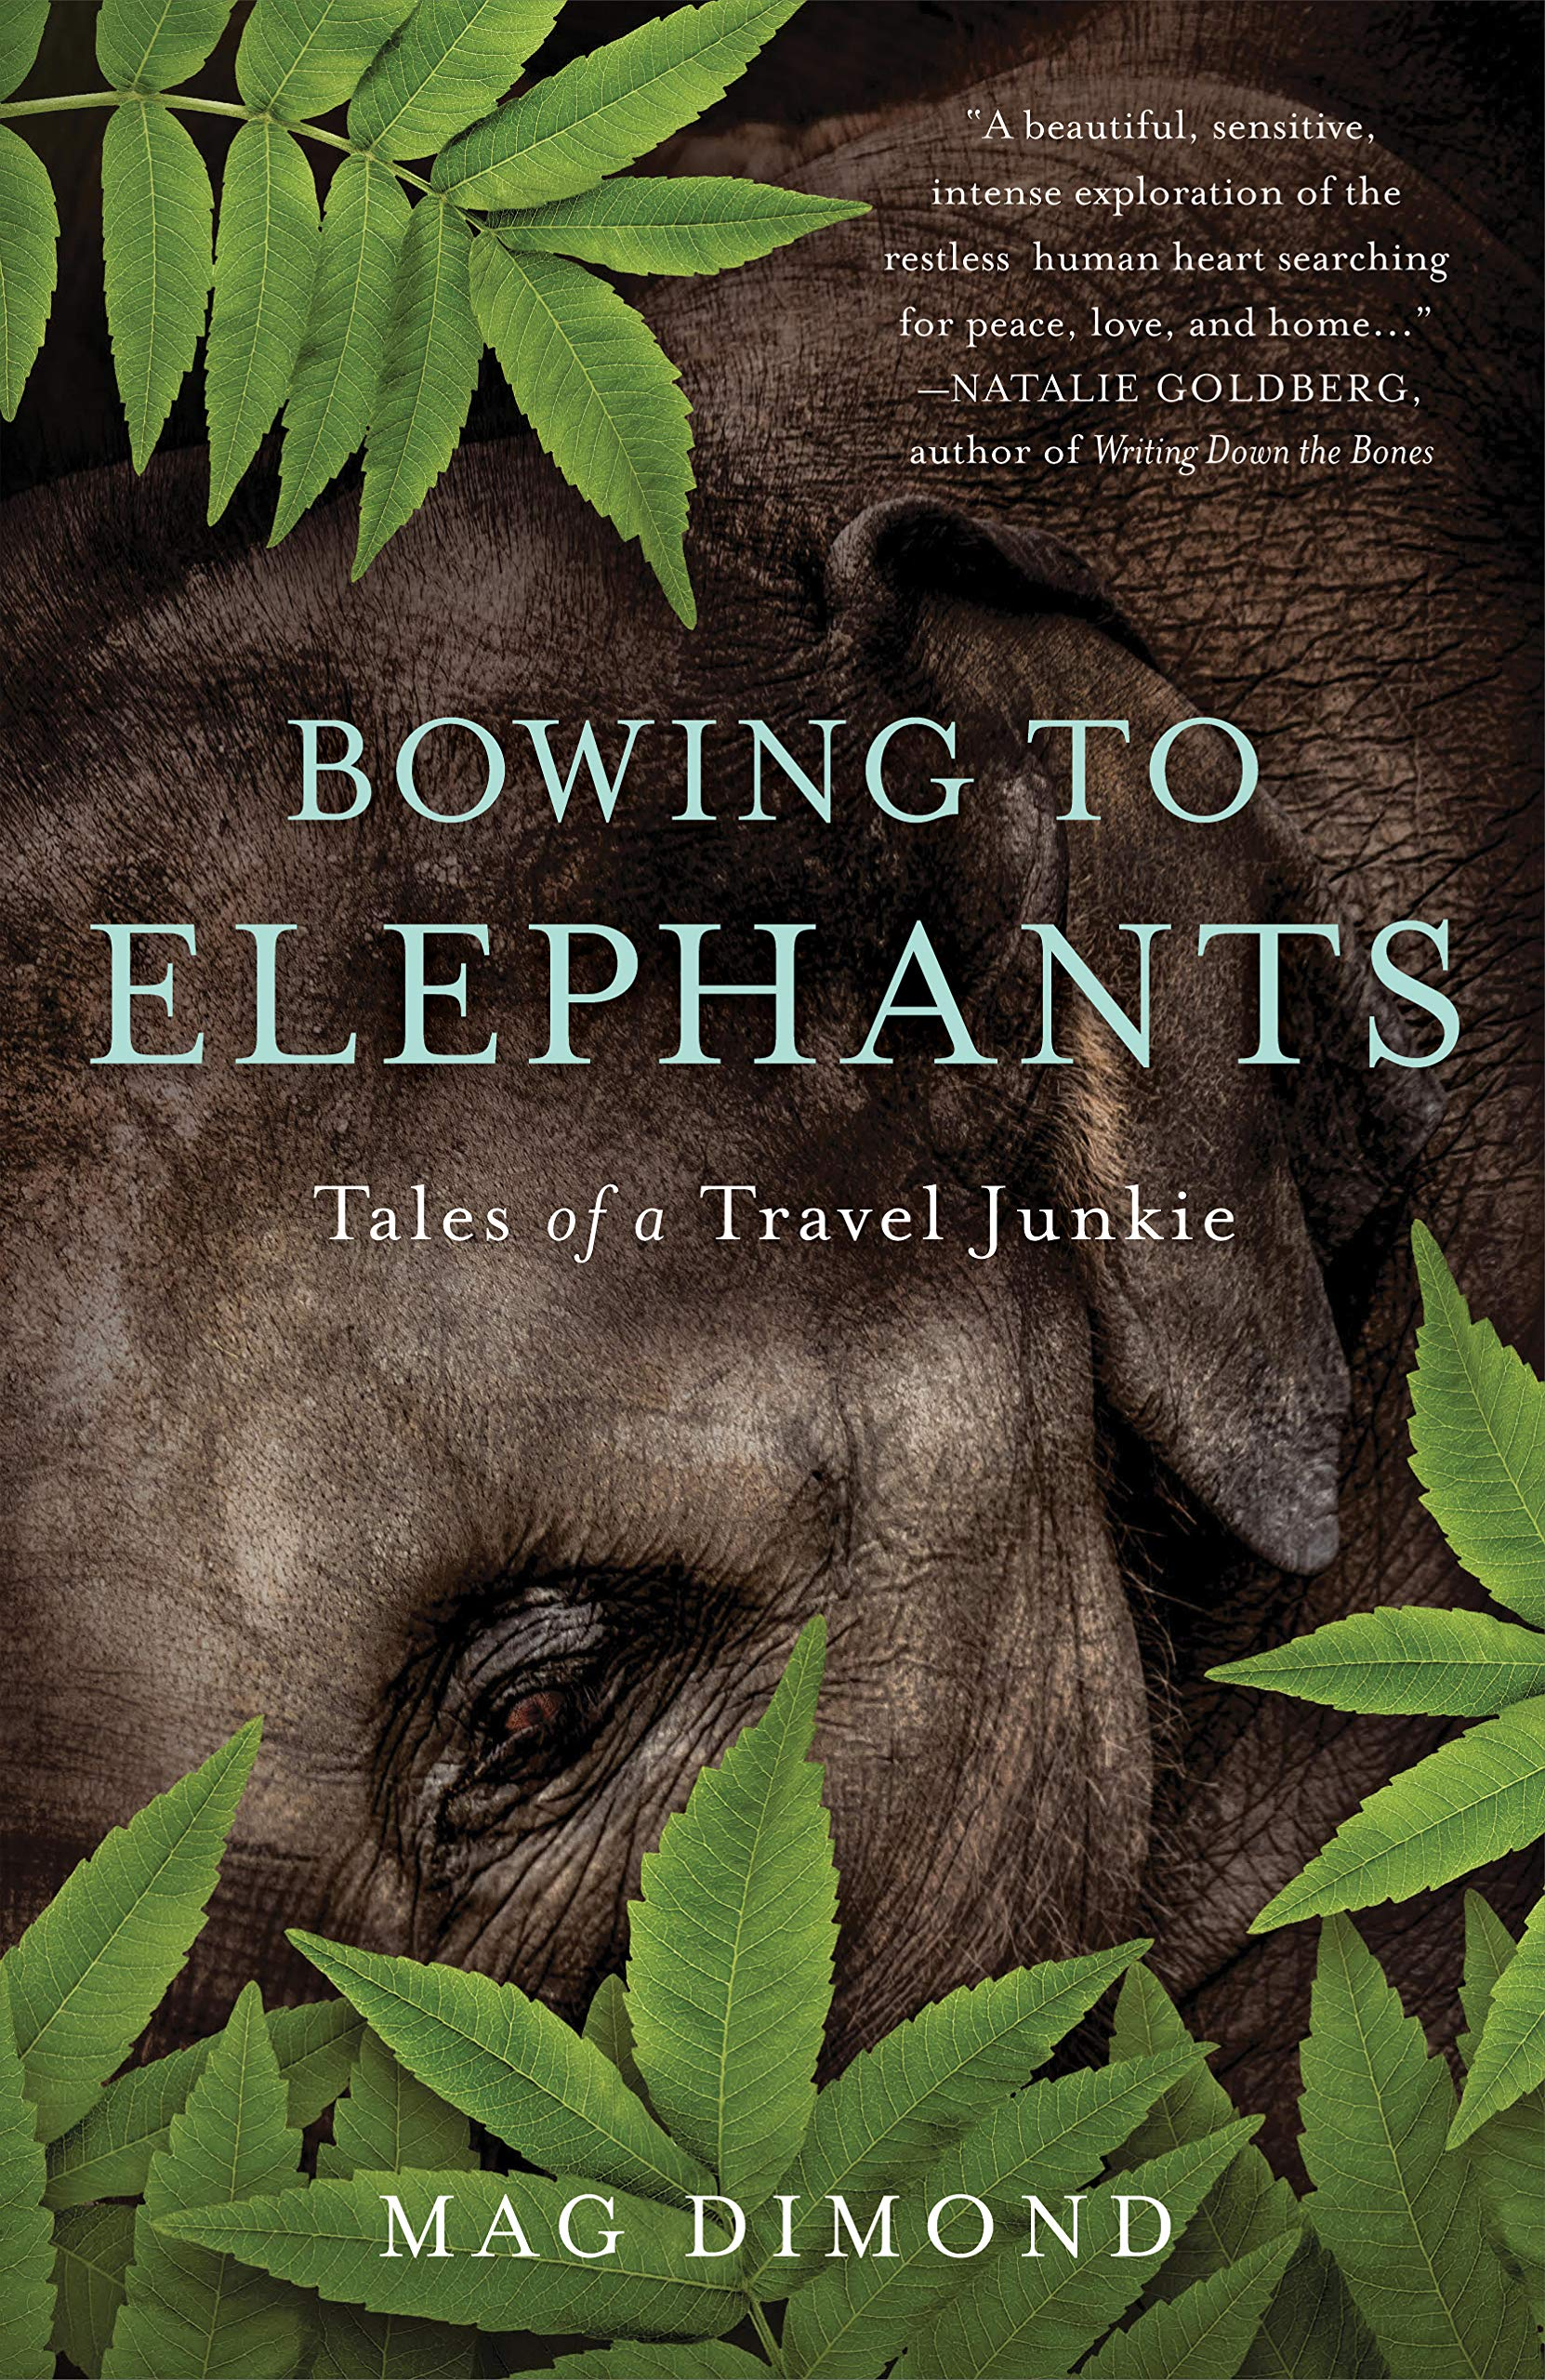 Image result for bowing to elephants book